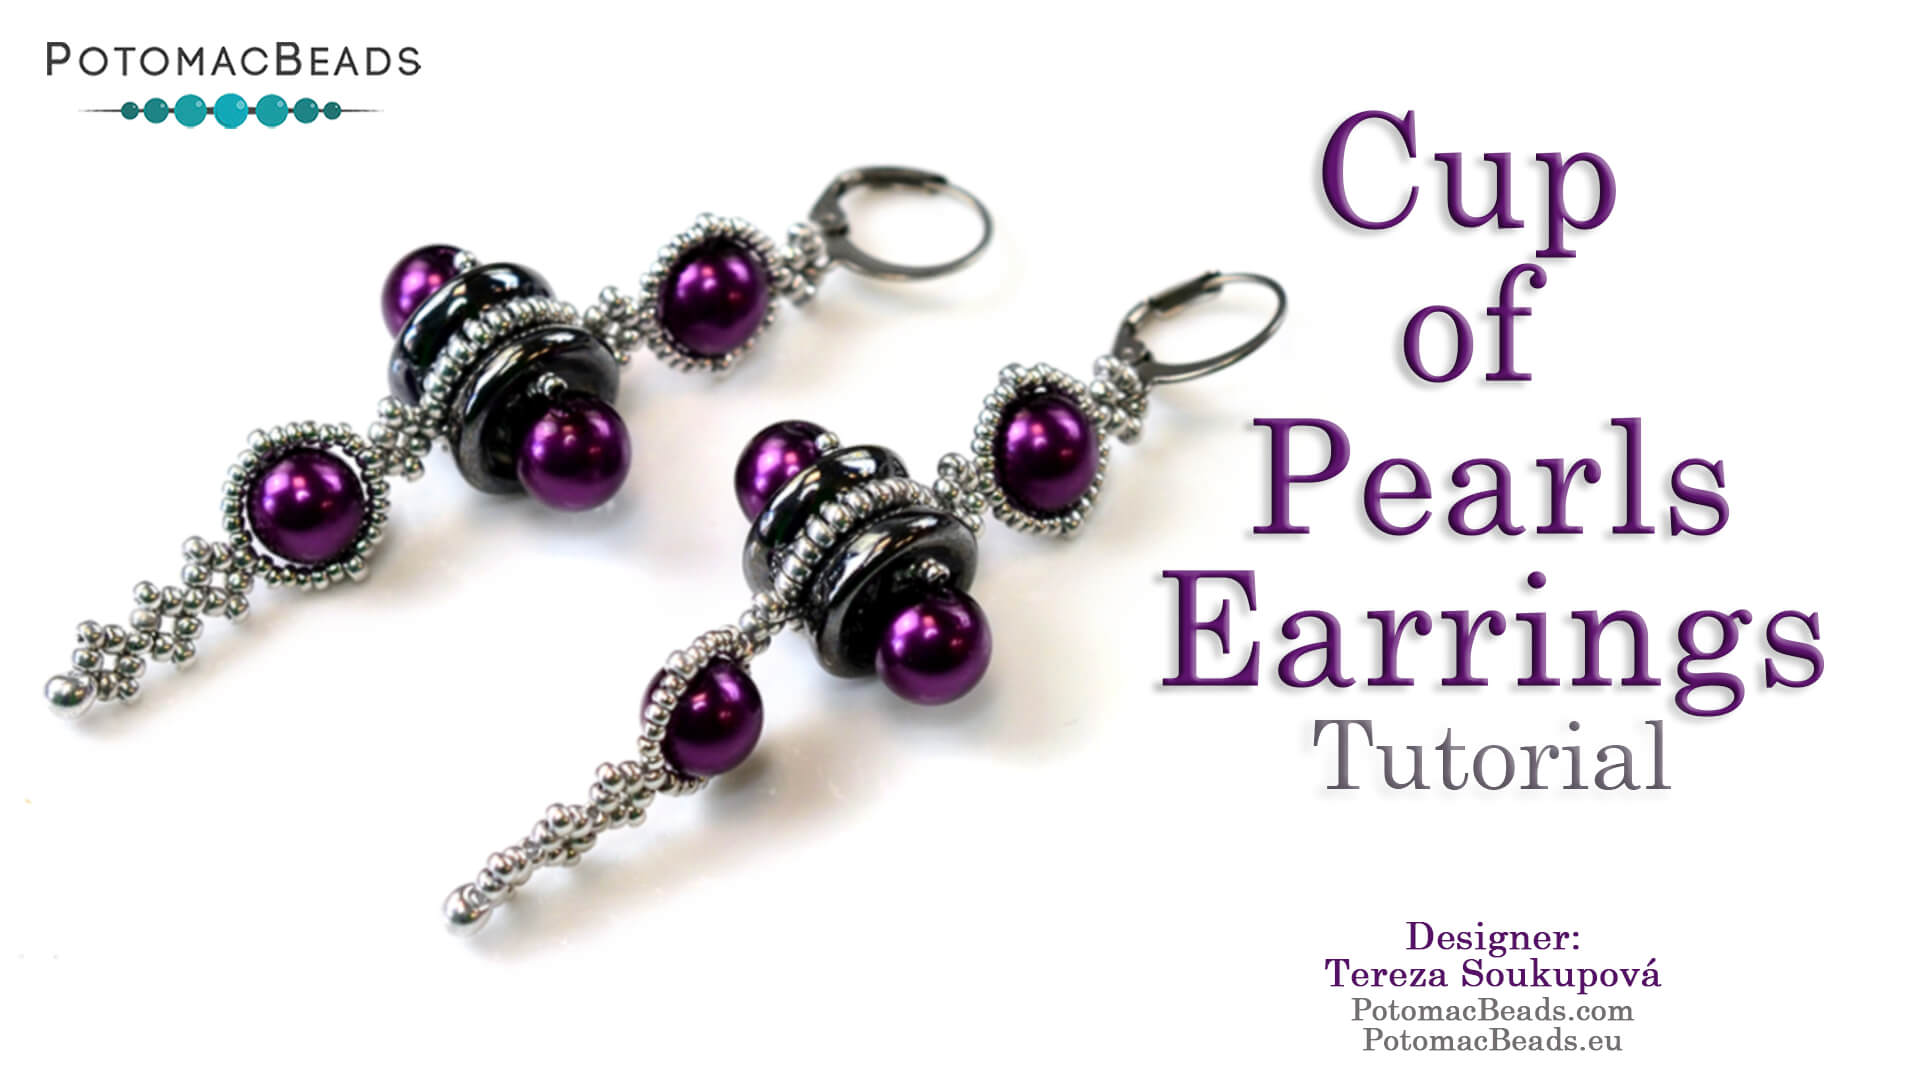 How to Bead Jewelry / Beading Tutorials & Jewel Making Videos / Right Angle Weave (RAW) Videos / Cup of Pearls Earrings Tutorial